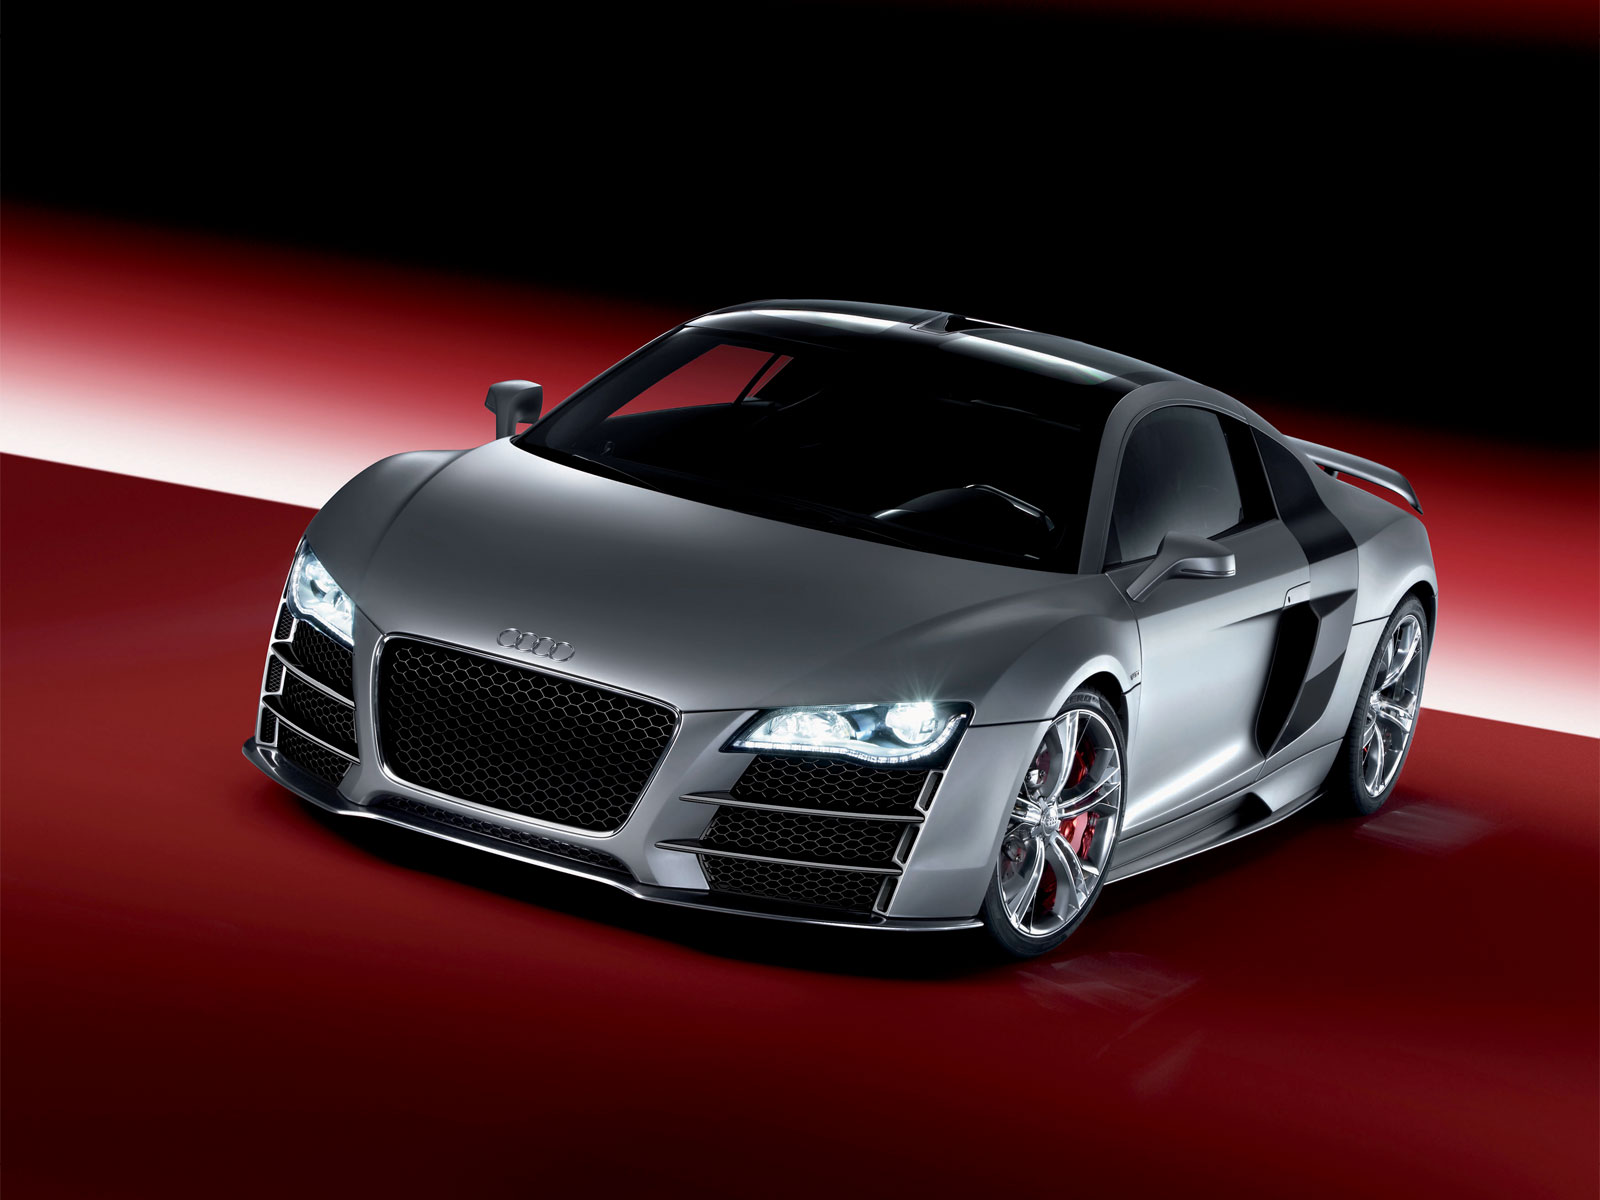 Hd Car wallpapers audi r8 v12 wallpaper 1600x1200